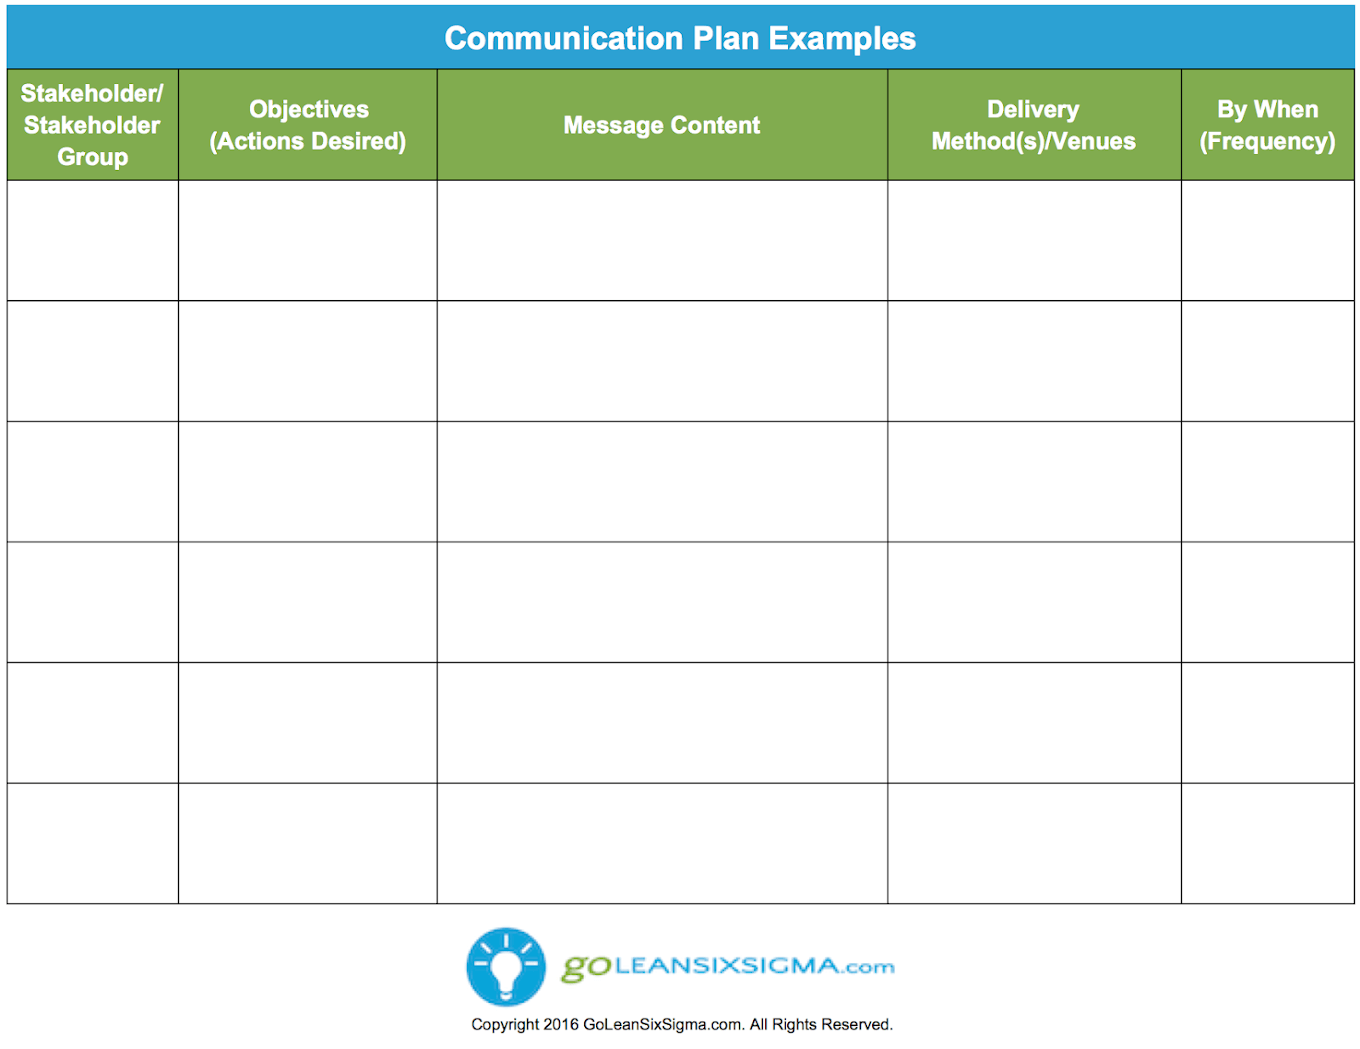 Messaging Matrix How To Keep Brand Messaging Aligned